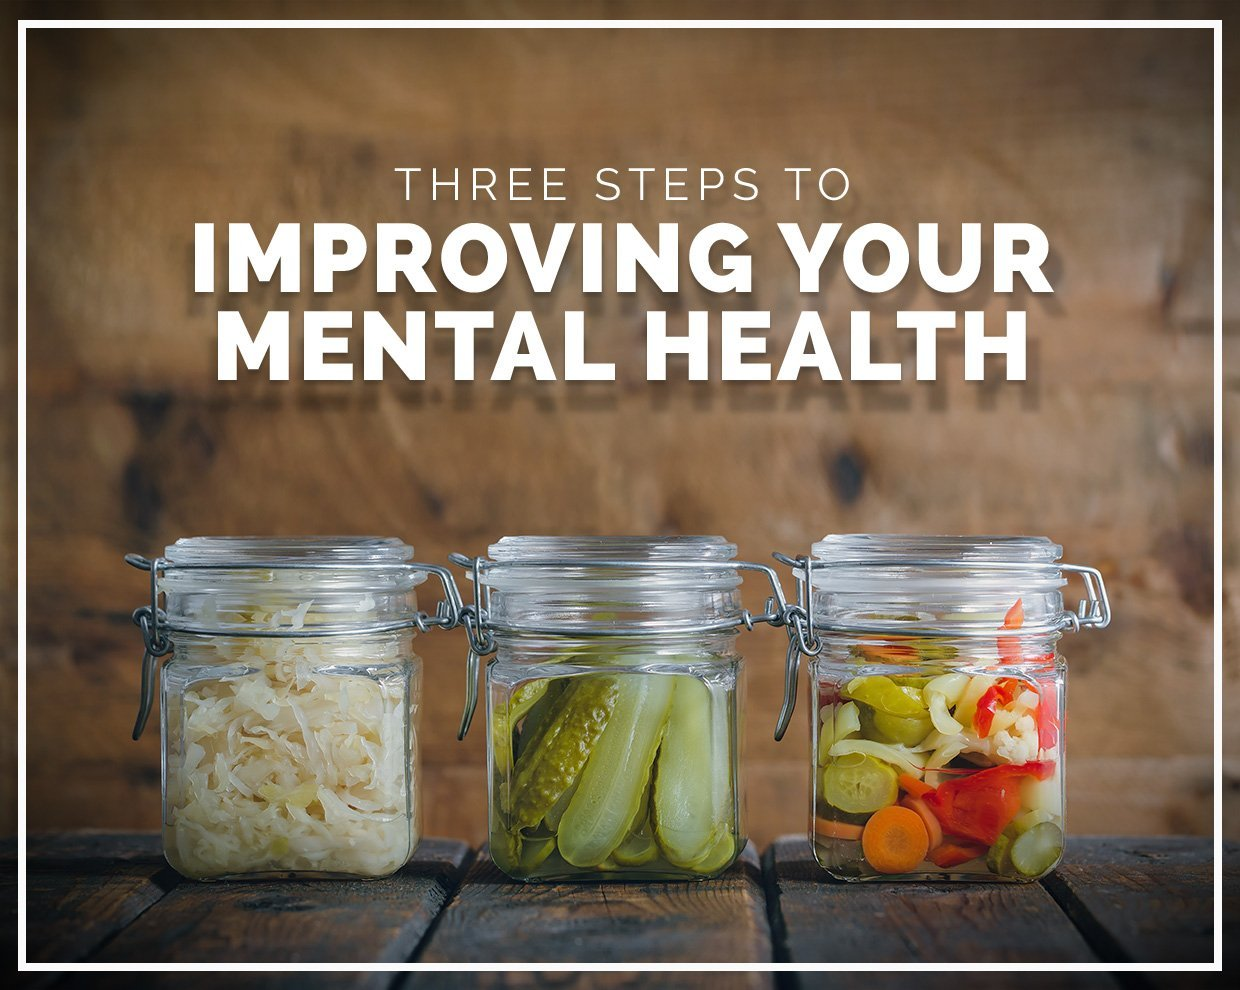 Three steps to improving your mental health using nutrition